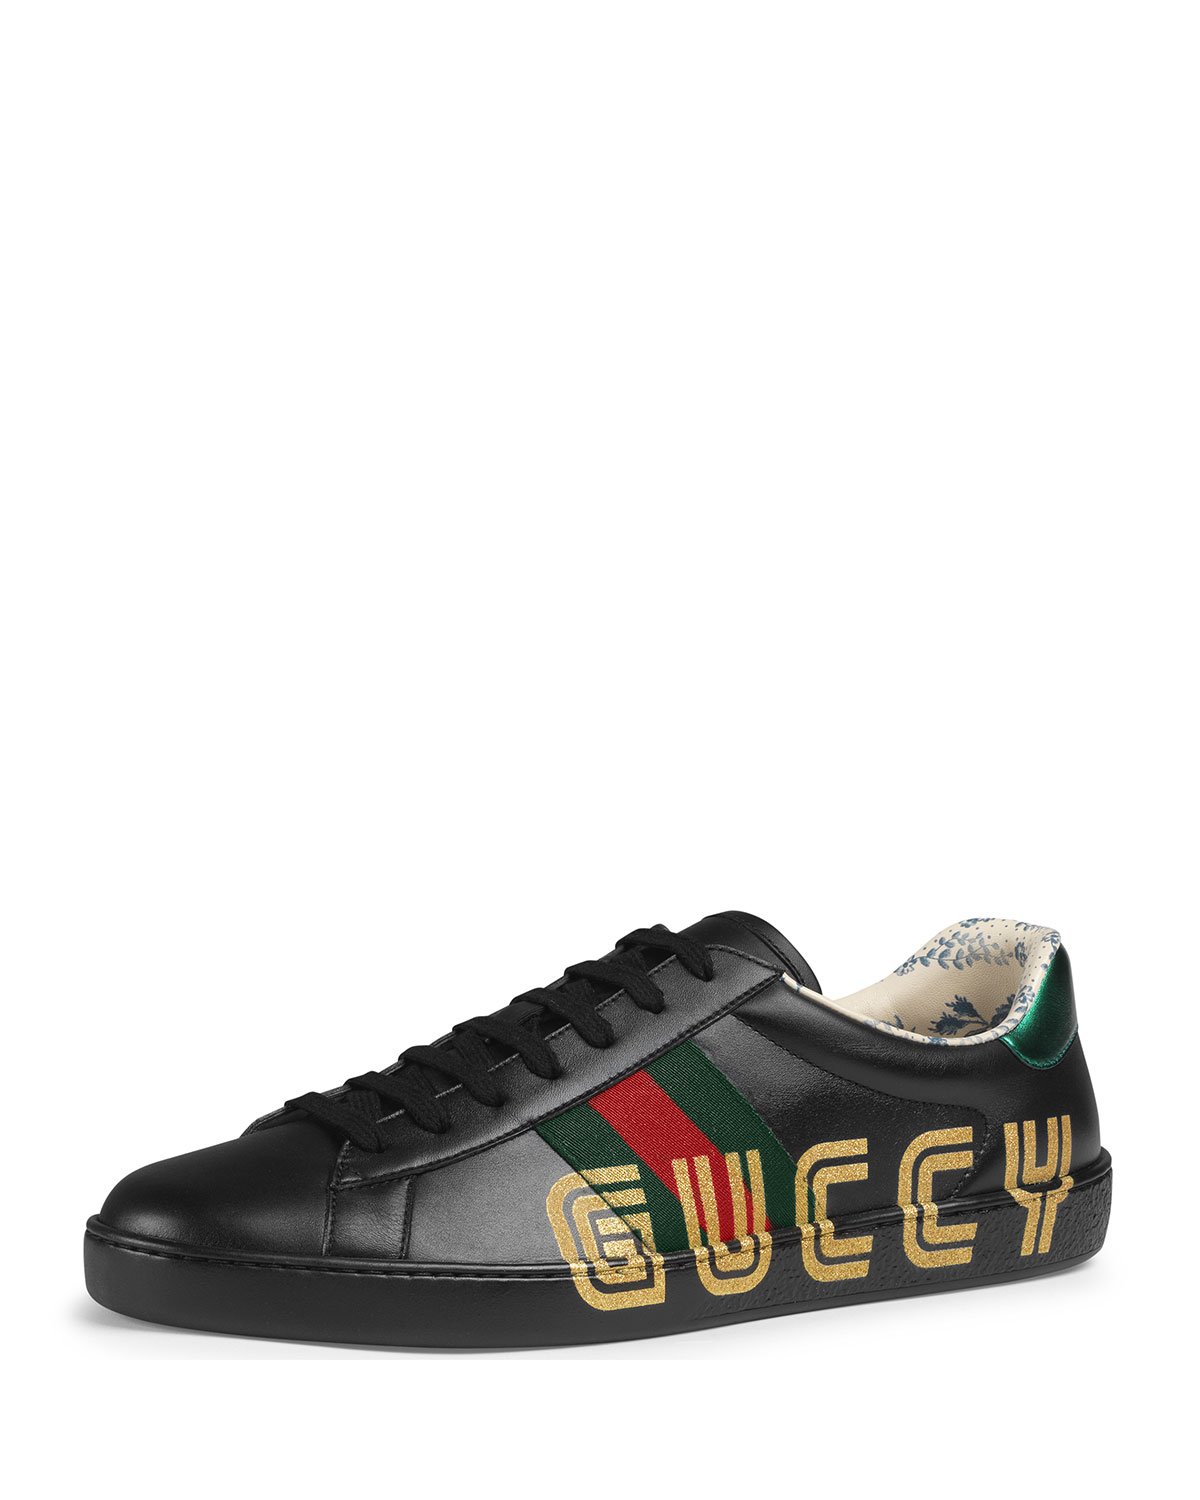 Gucci Ace Sneaker with Guccy Print